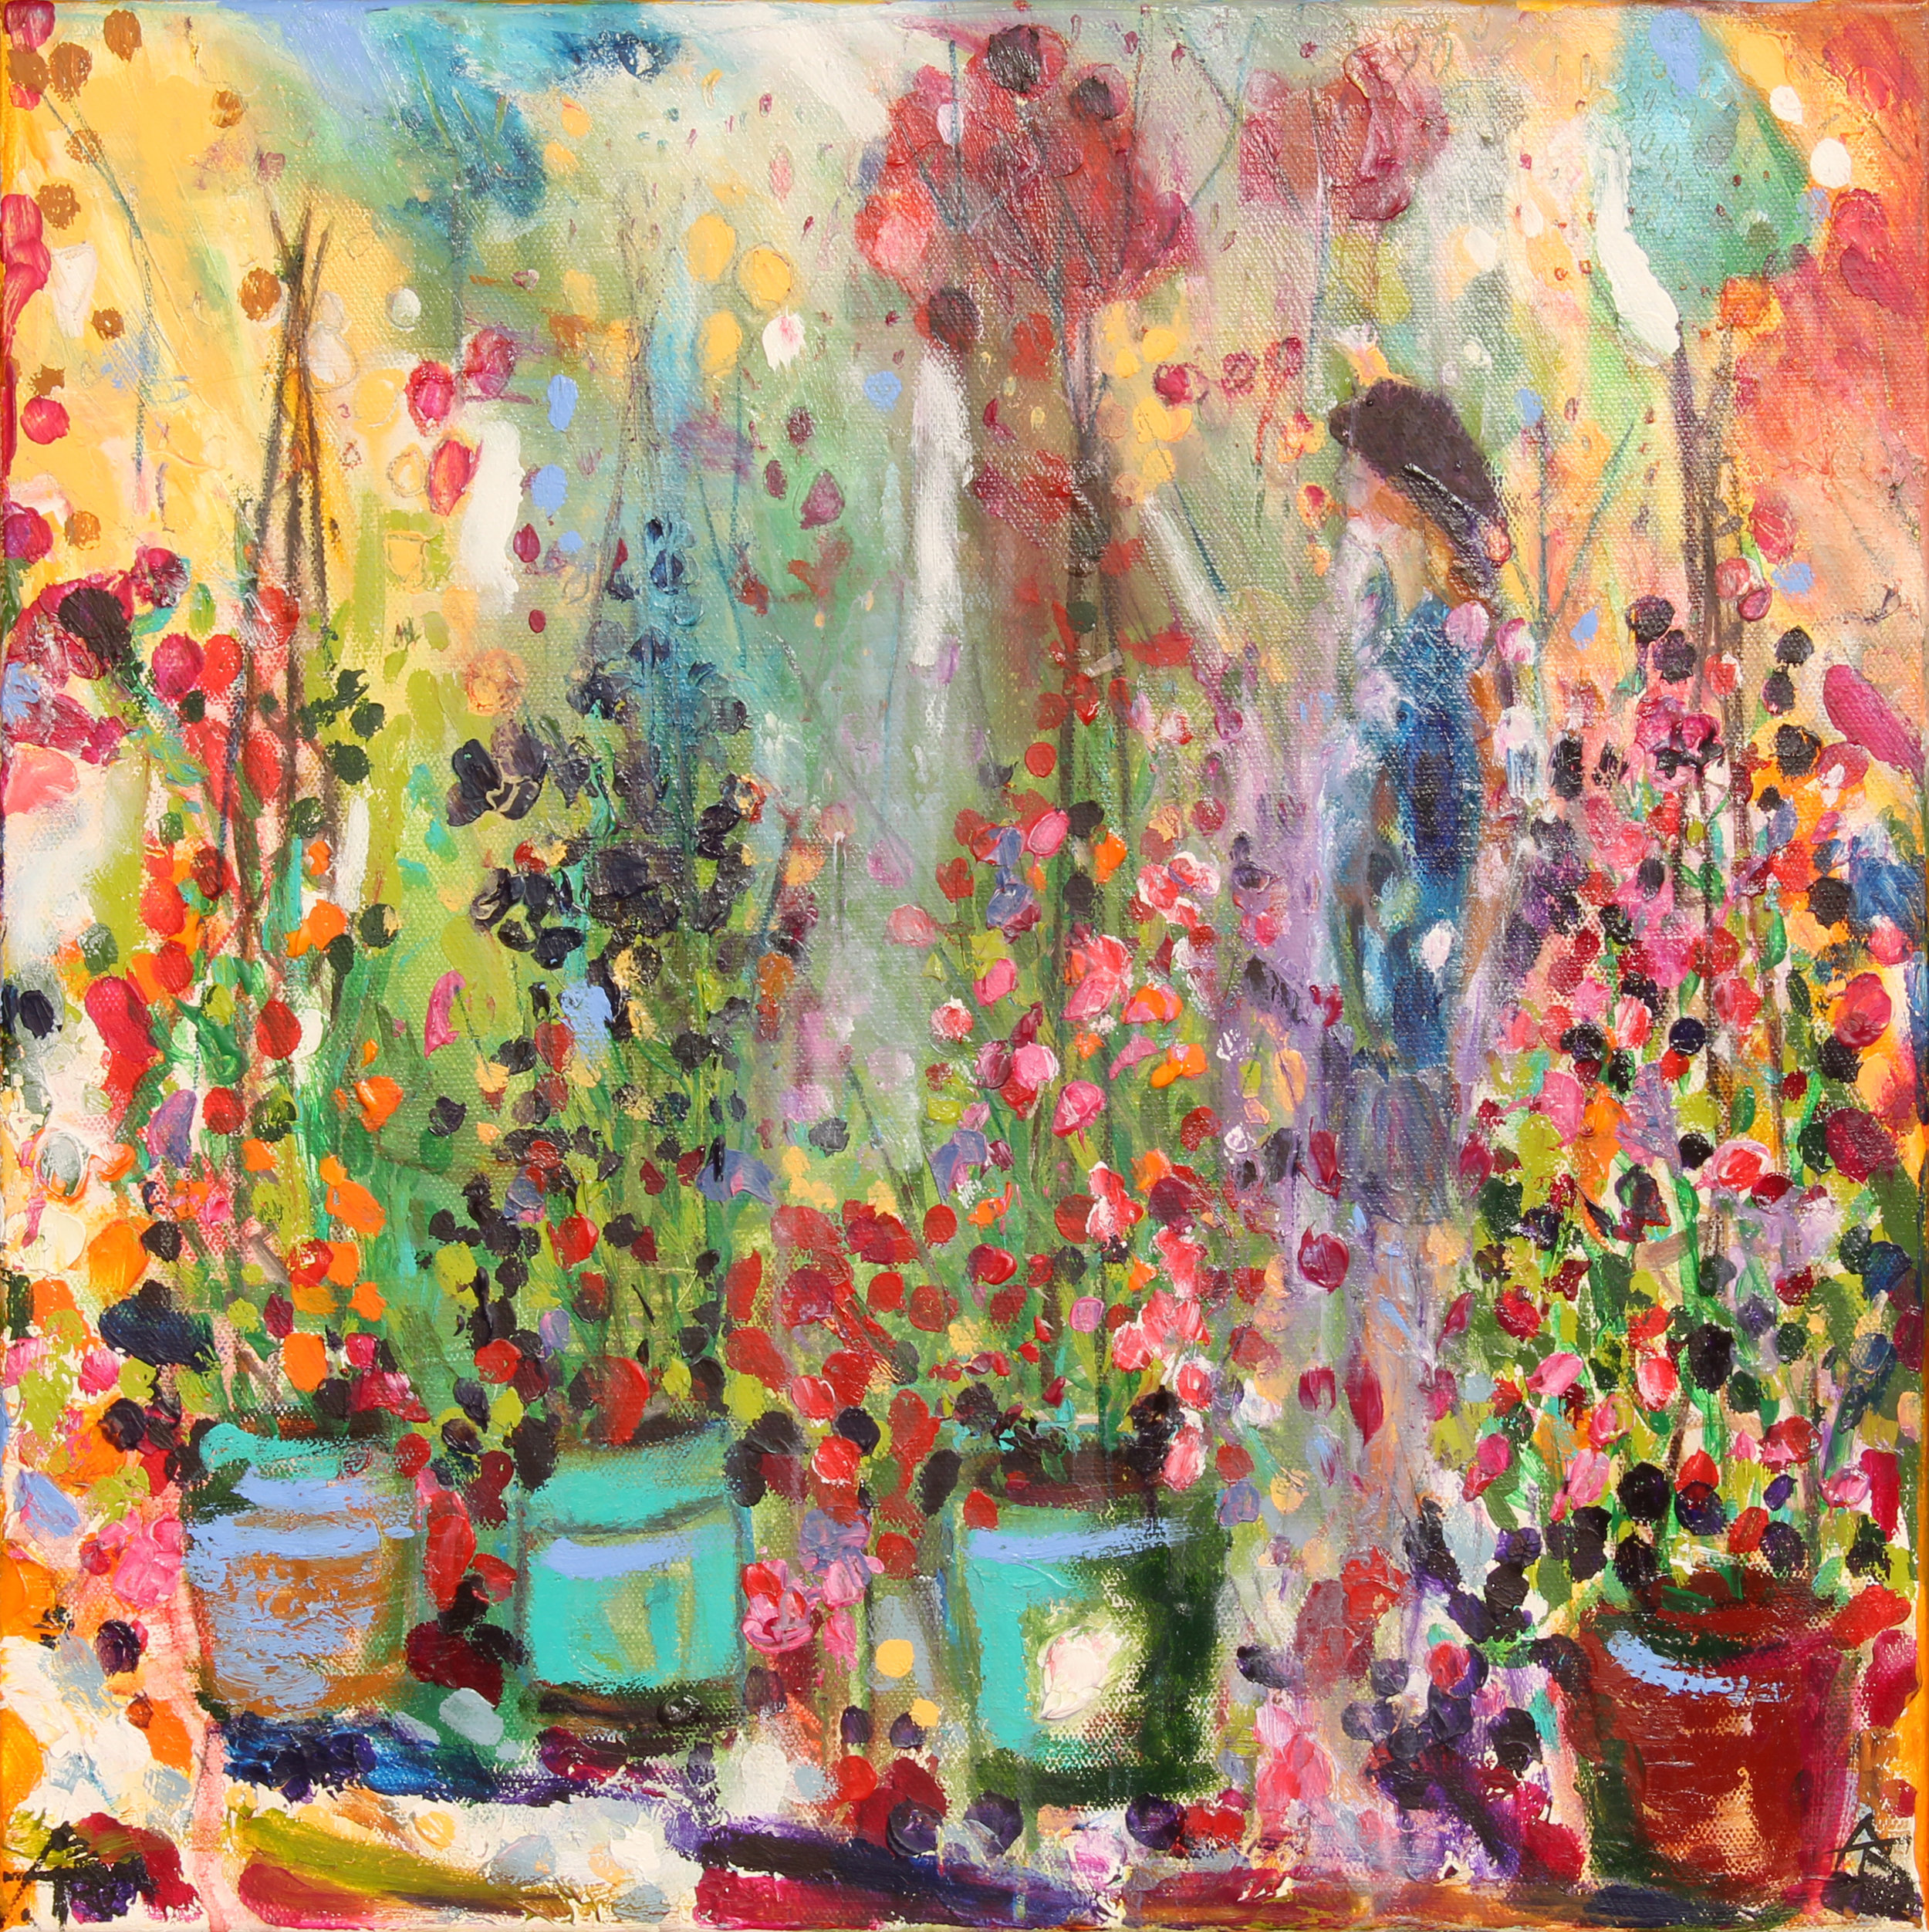 The Scent Of The Sweet Peas, acrylic on canvas, 46 x 46 cm